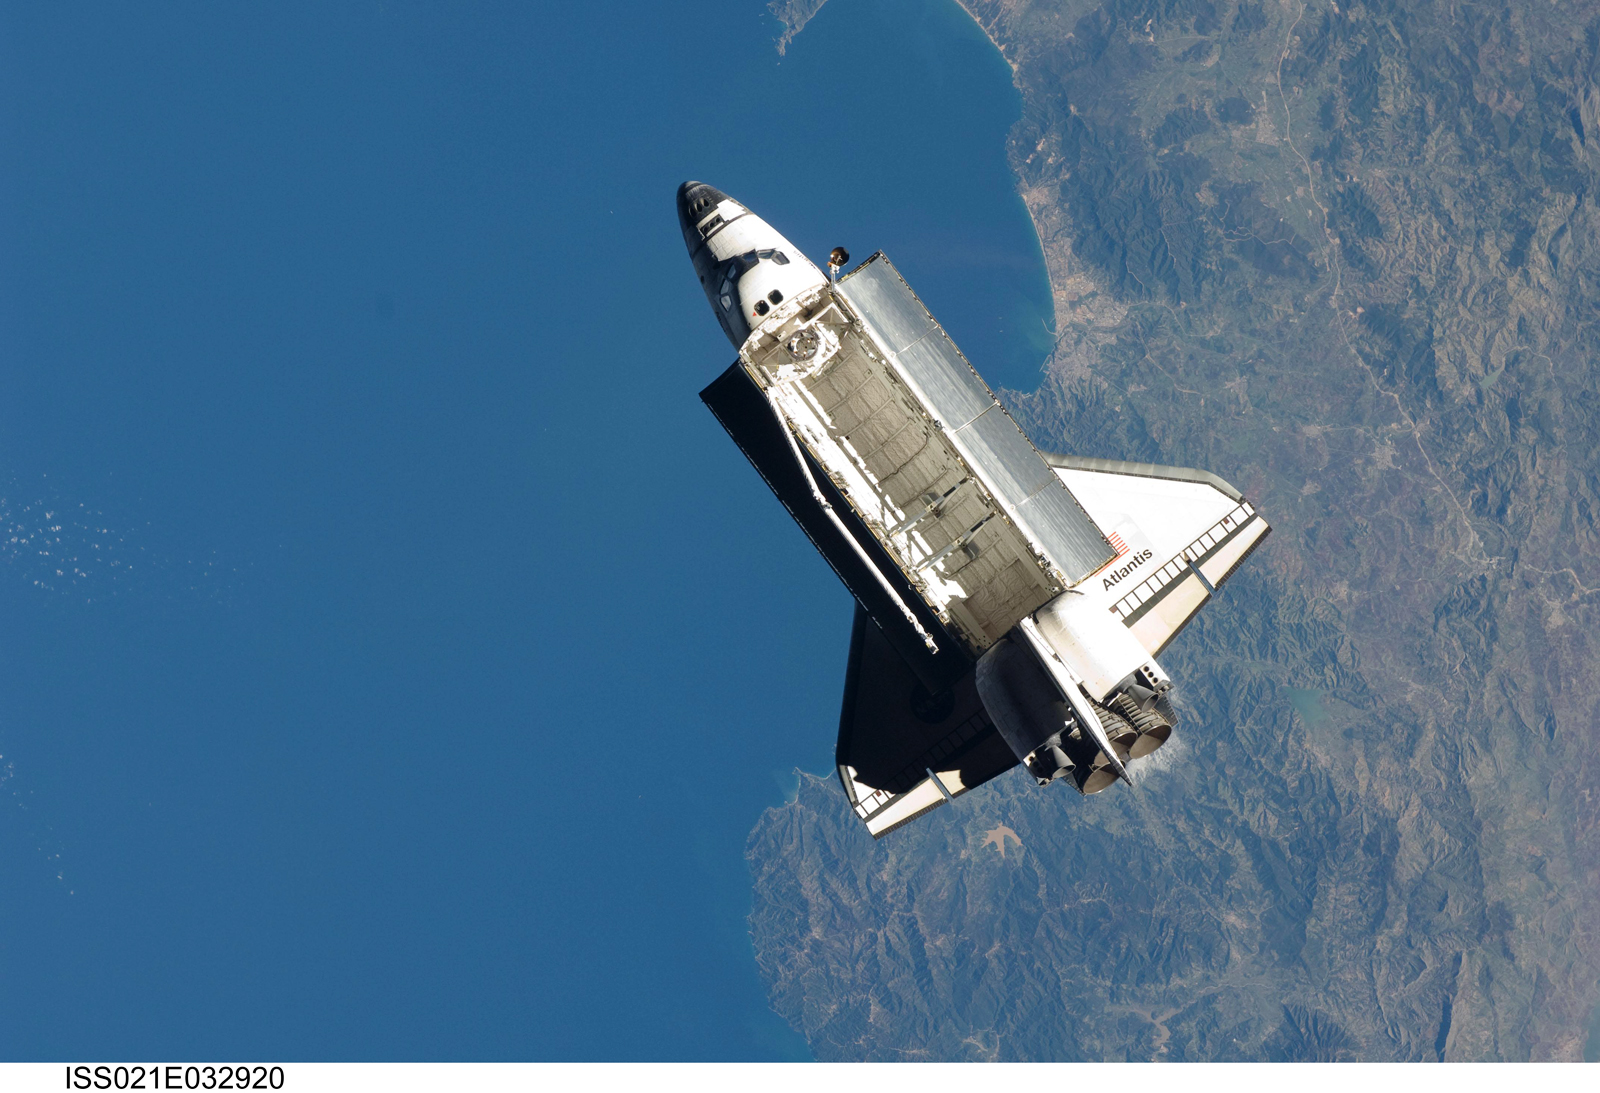 Stunning Space Shuttle HD Wallpapers | Desktop Wallpapers